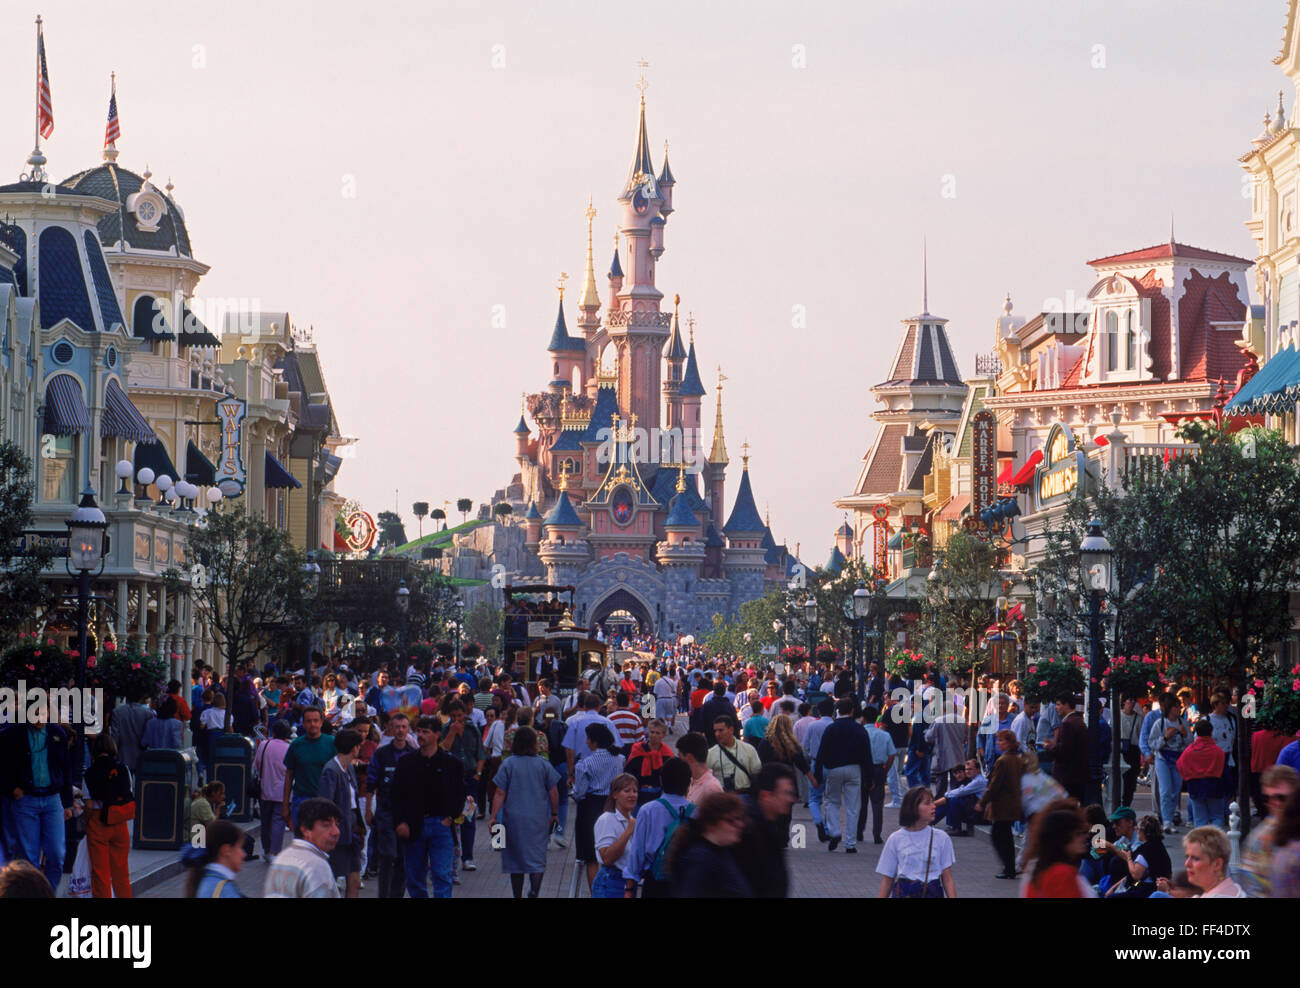 The Castle with Main Street shops, rides and people during daytime at Euro Disneyland at Euro Disney Resort outside - Stock Image